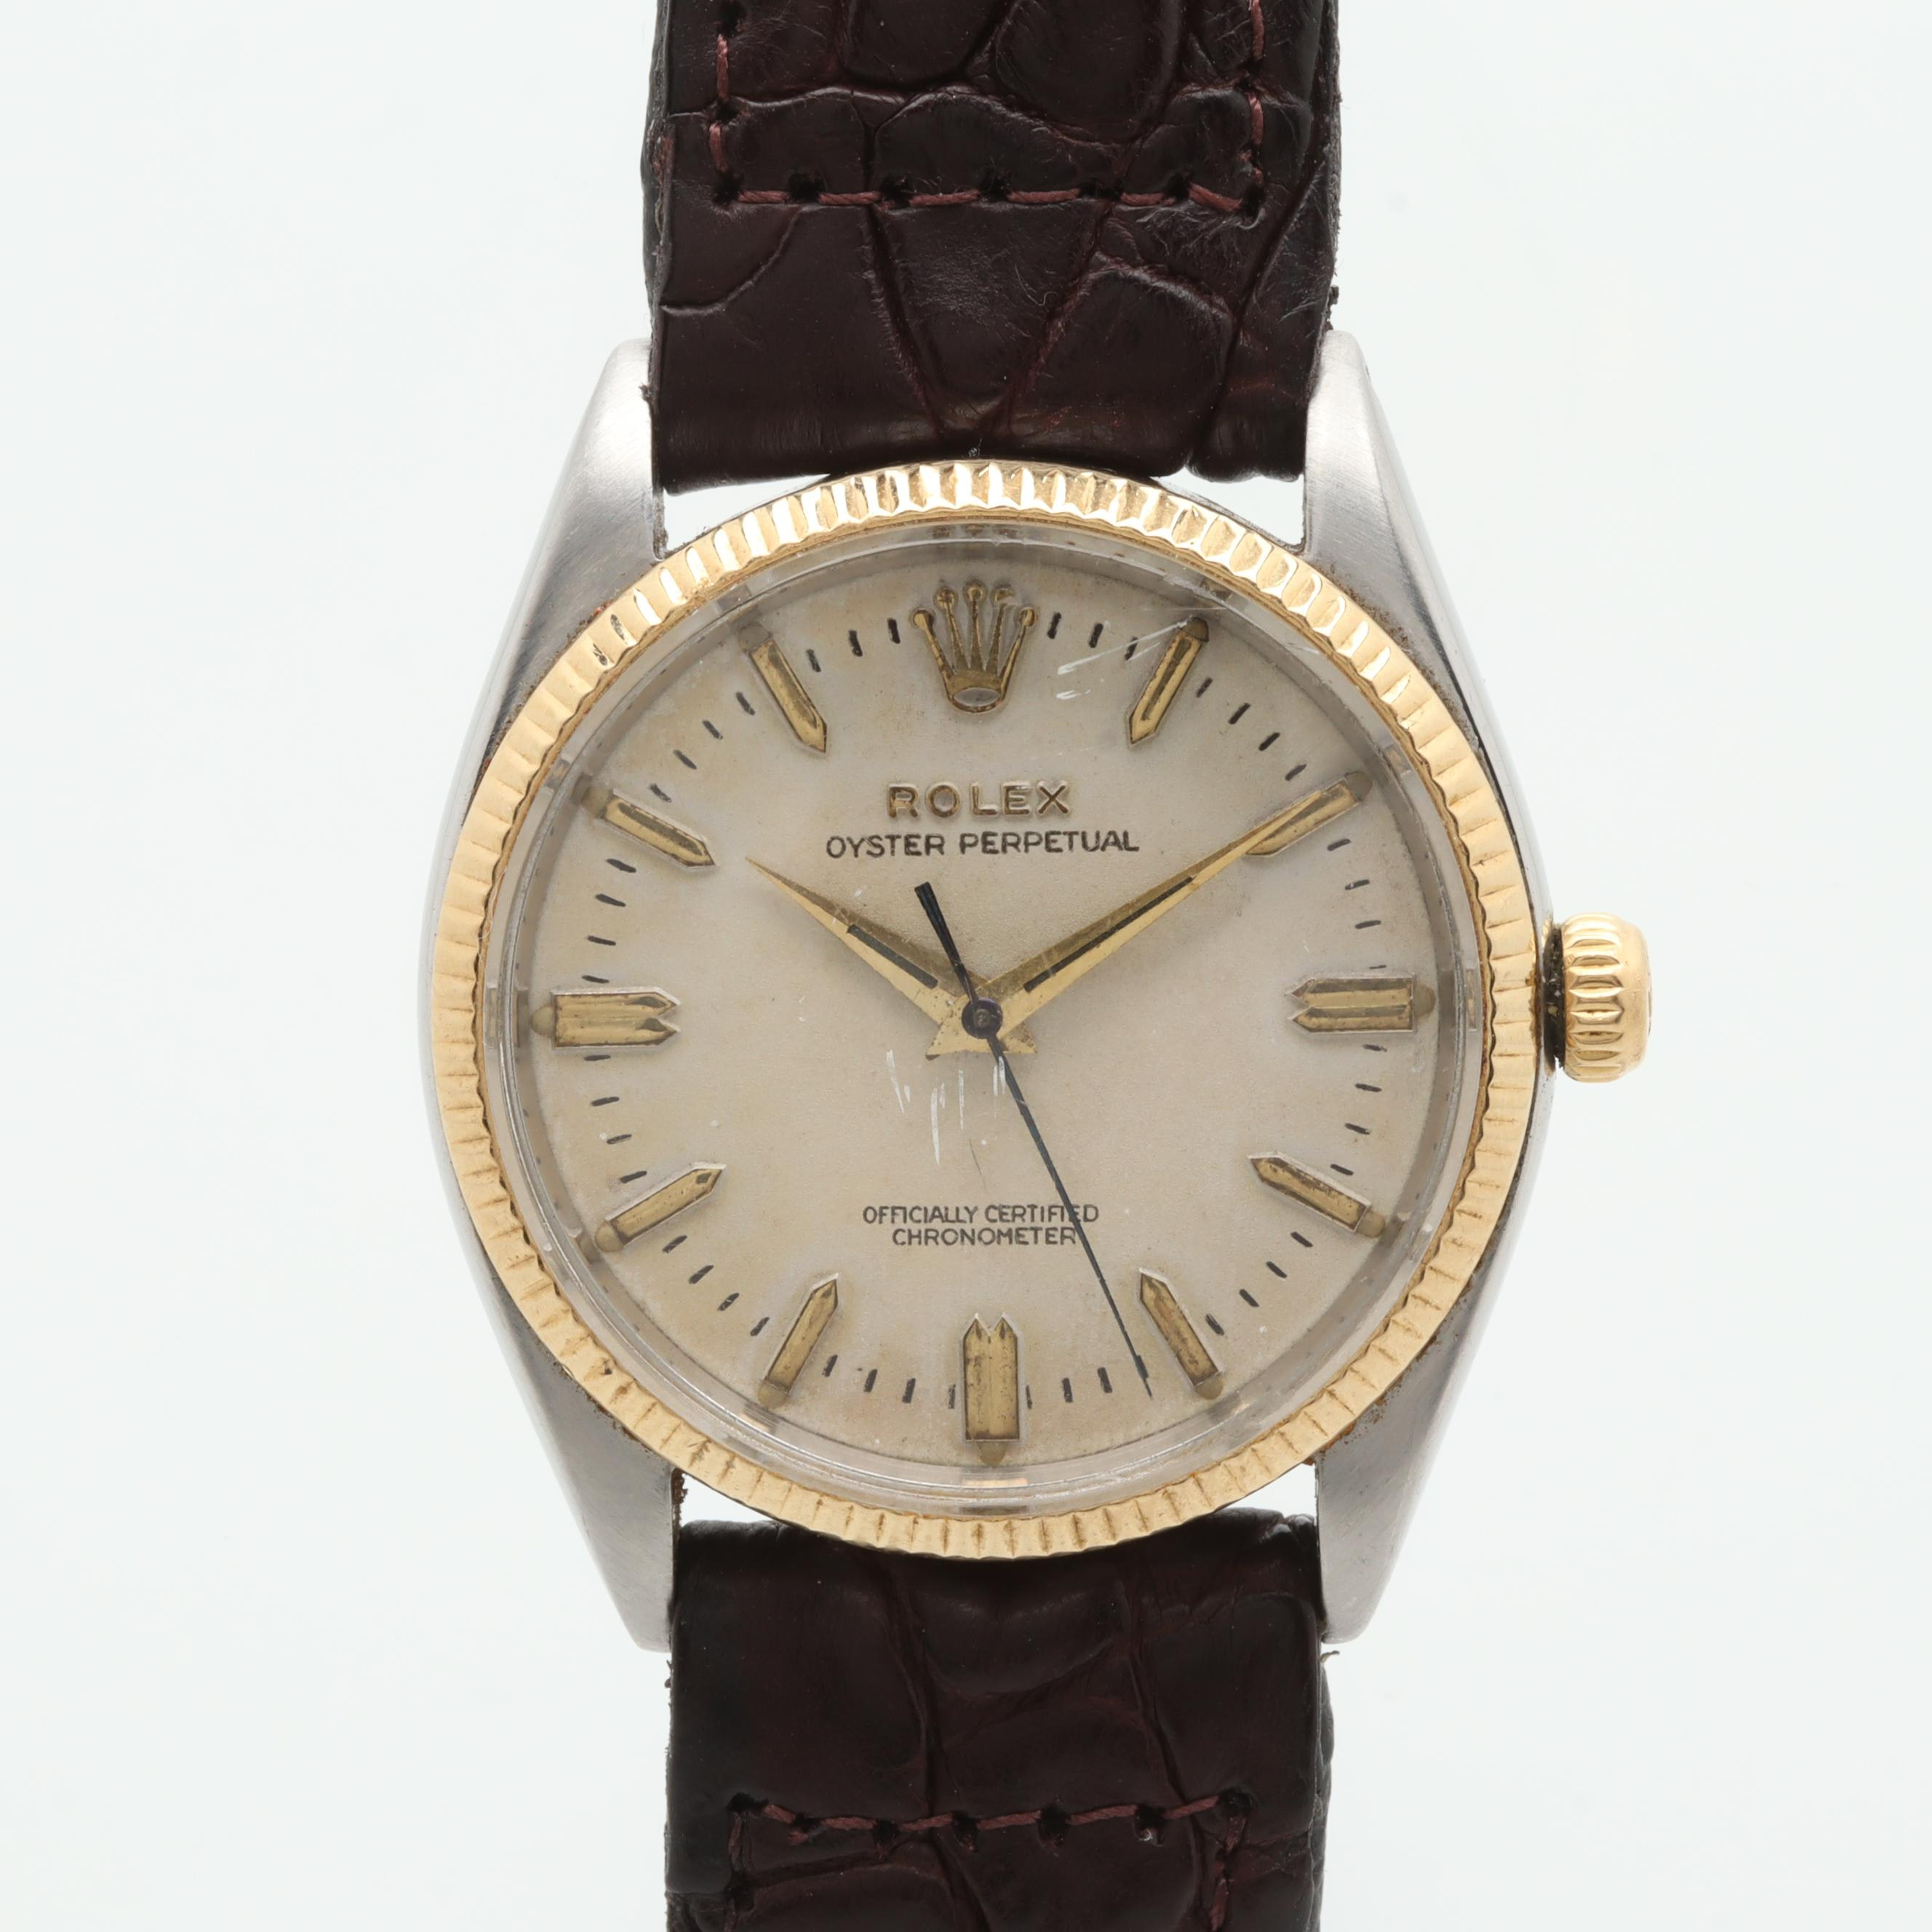 Vintage Rolex Oyster Perpetual Stainless Steel and 14K Yellow Gold Wristwatch